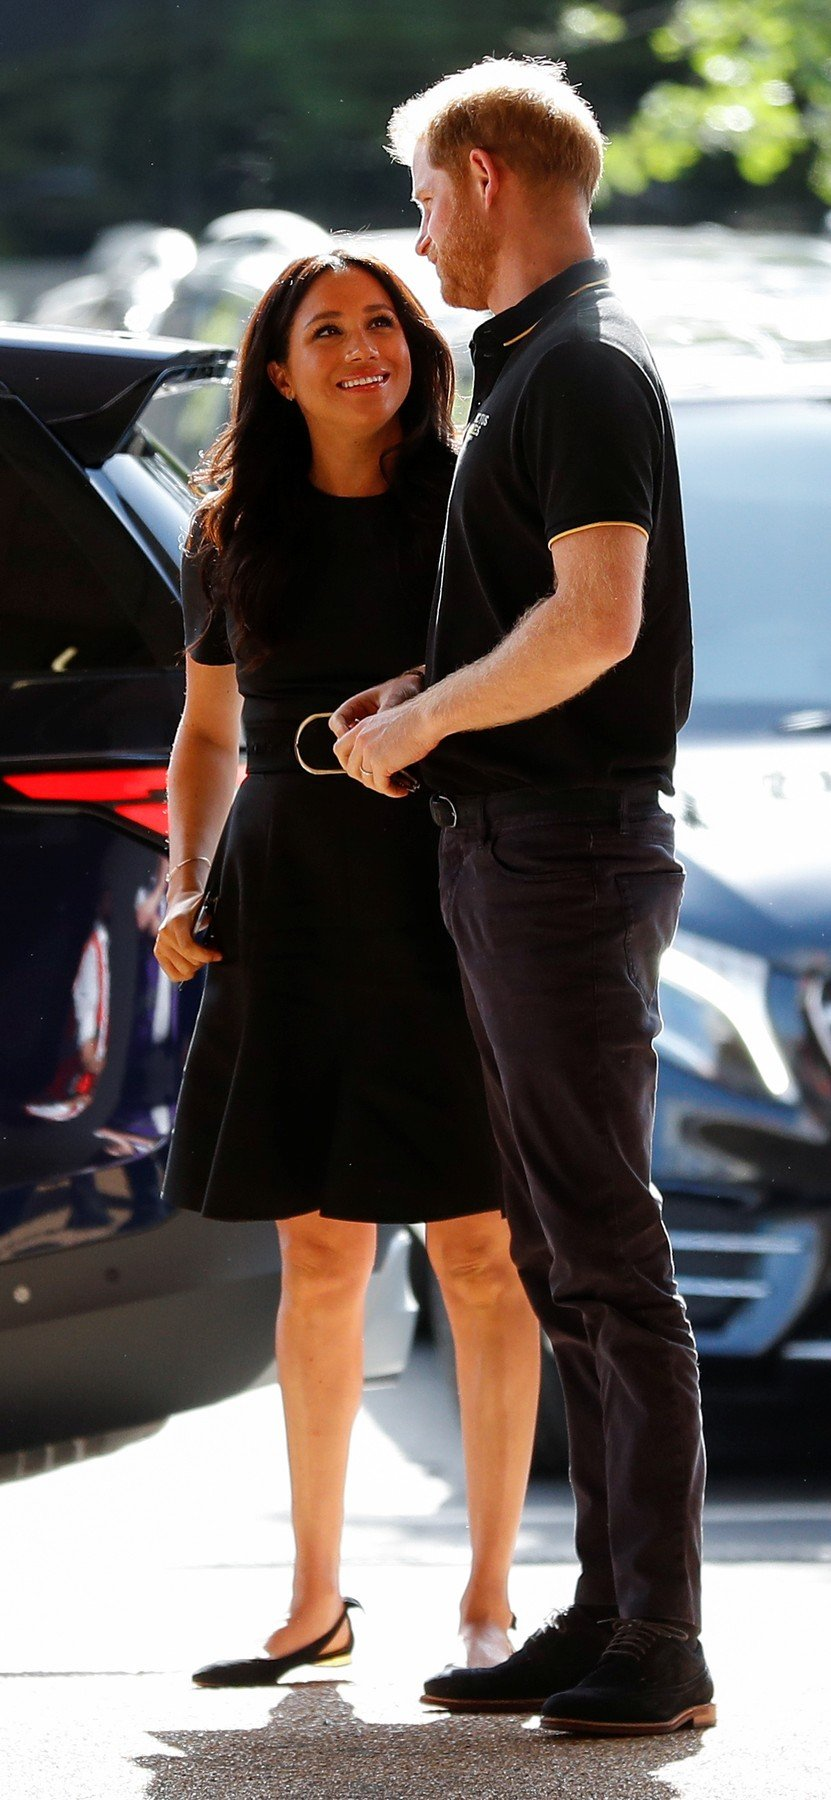 The Duke and Duchess of Sussex arrive to attend the Boston Red Sox vs New York Yankees baseball game at the London Stadium in support of the Invictus Games Foundation., Image: 452571150, License: Rights-managed, Restrictions: , Model Release: no, Credit line: Profimedia, Press Association